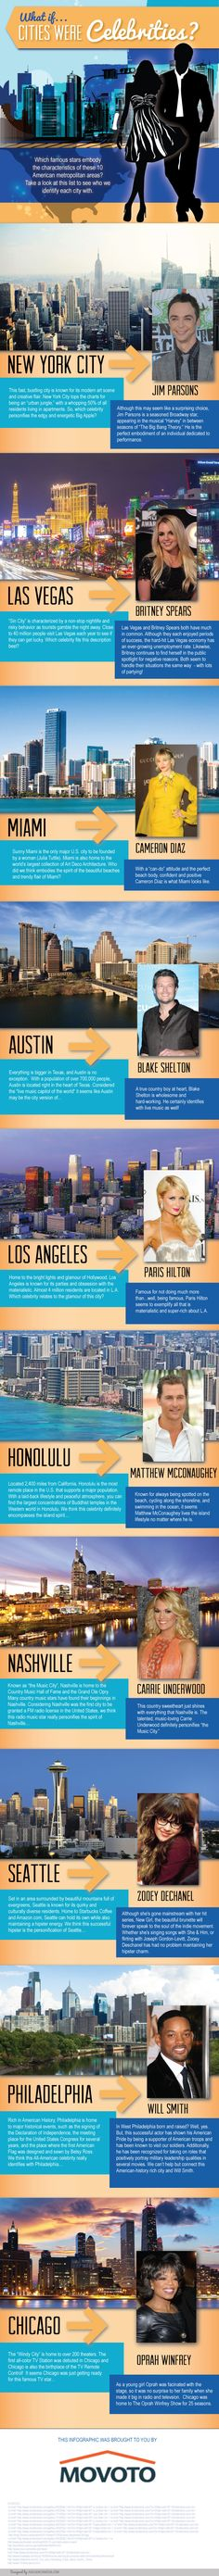 what-if-cities-were-celebrities/